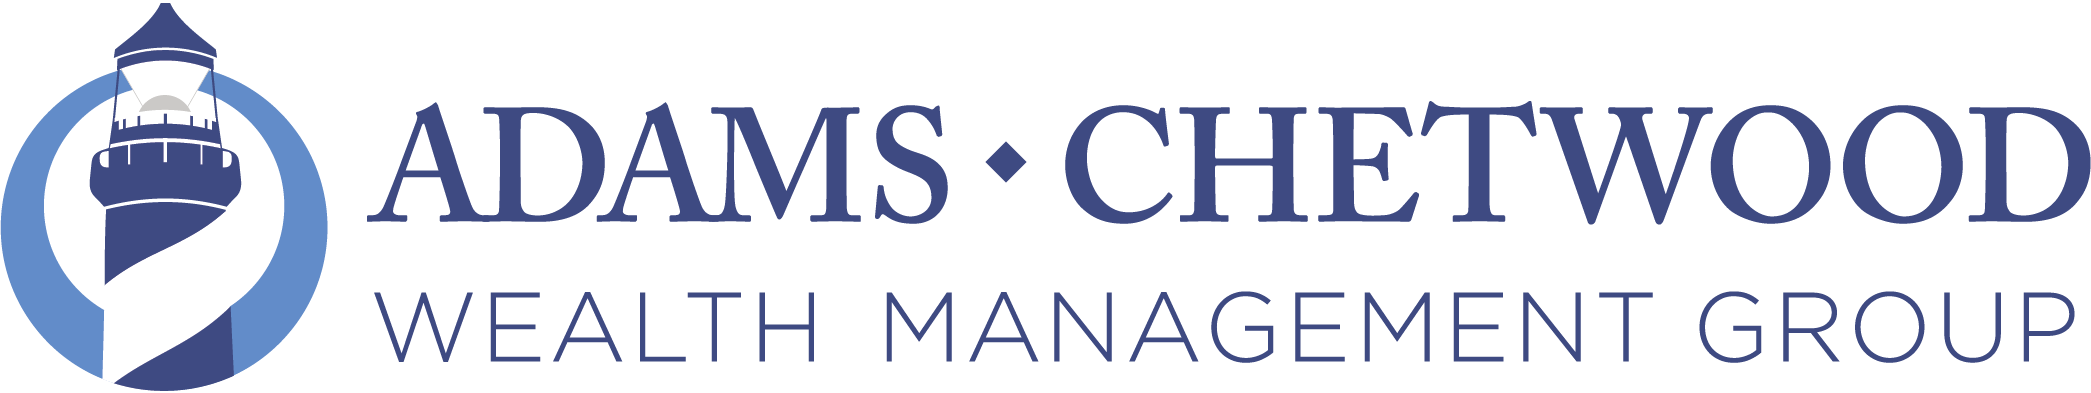 Logo for Adams Chetwood